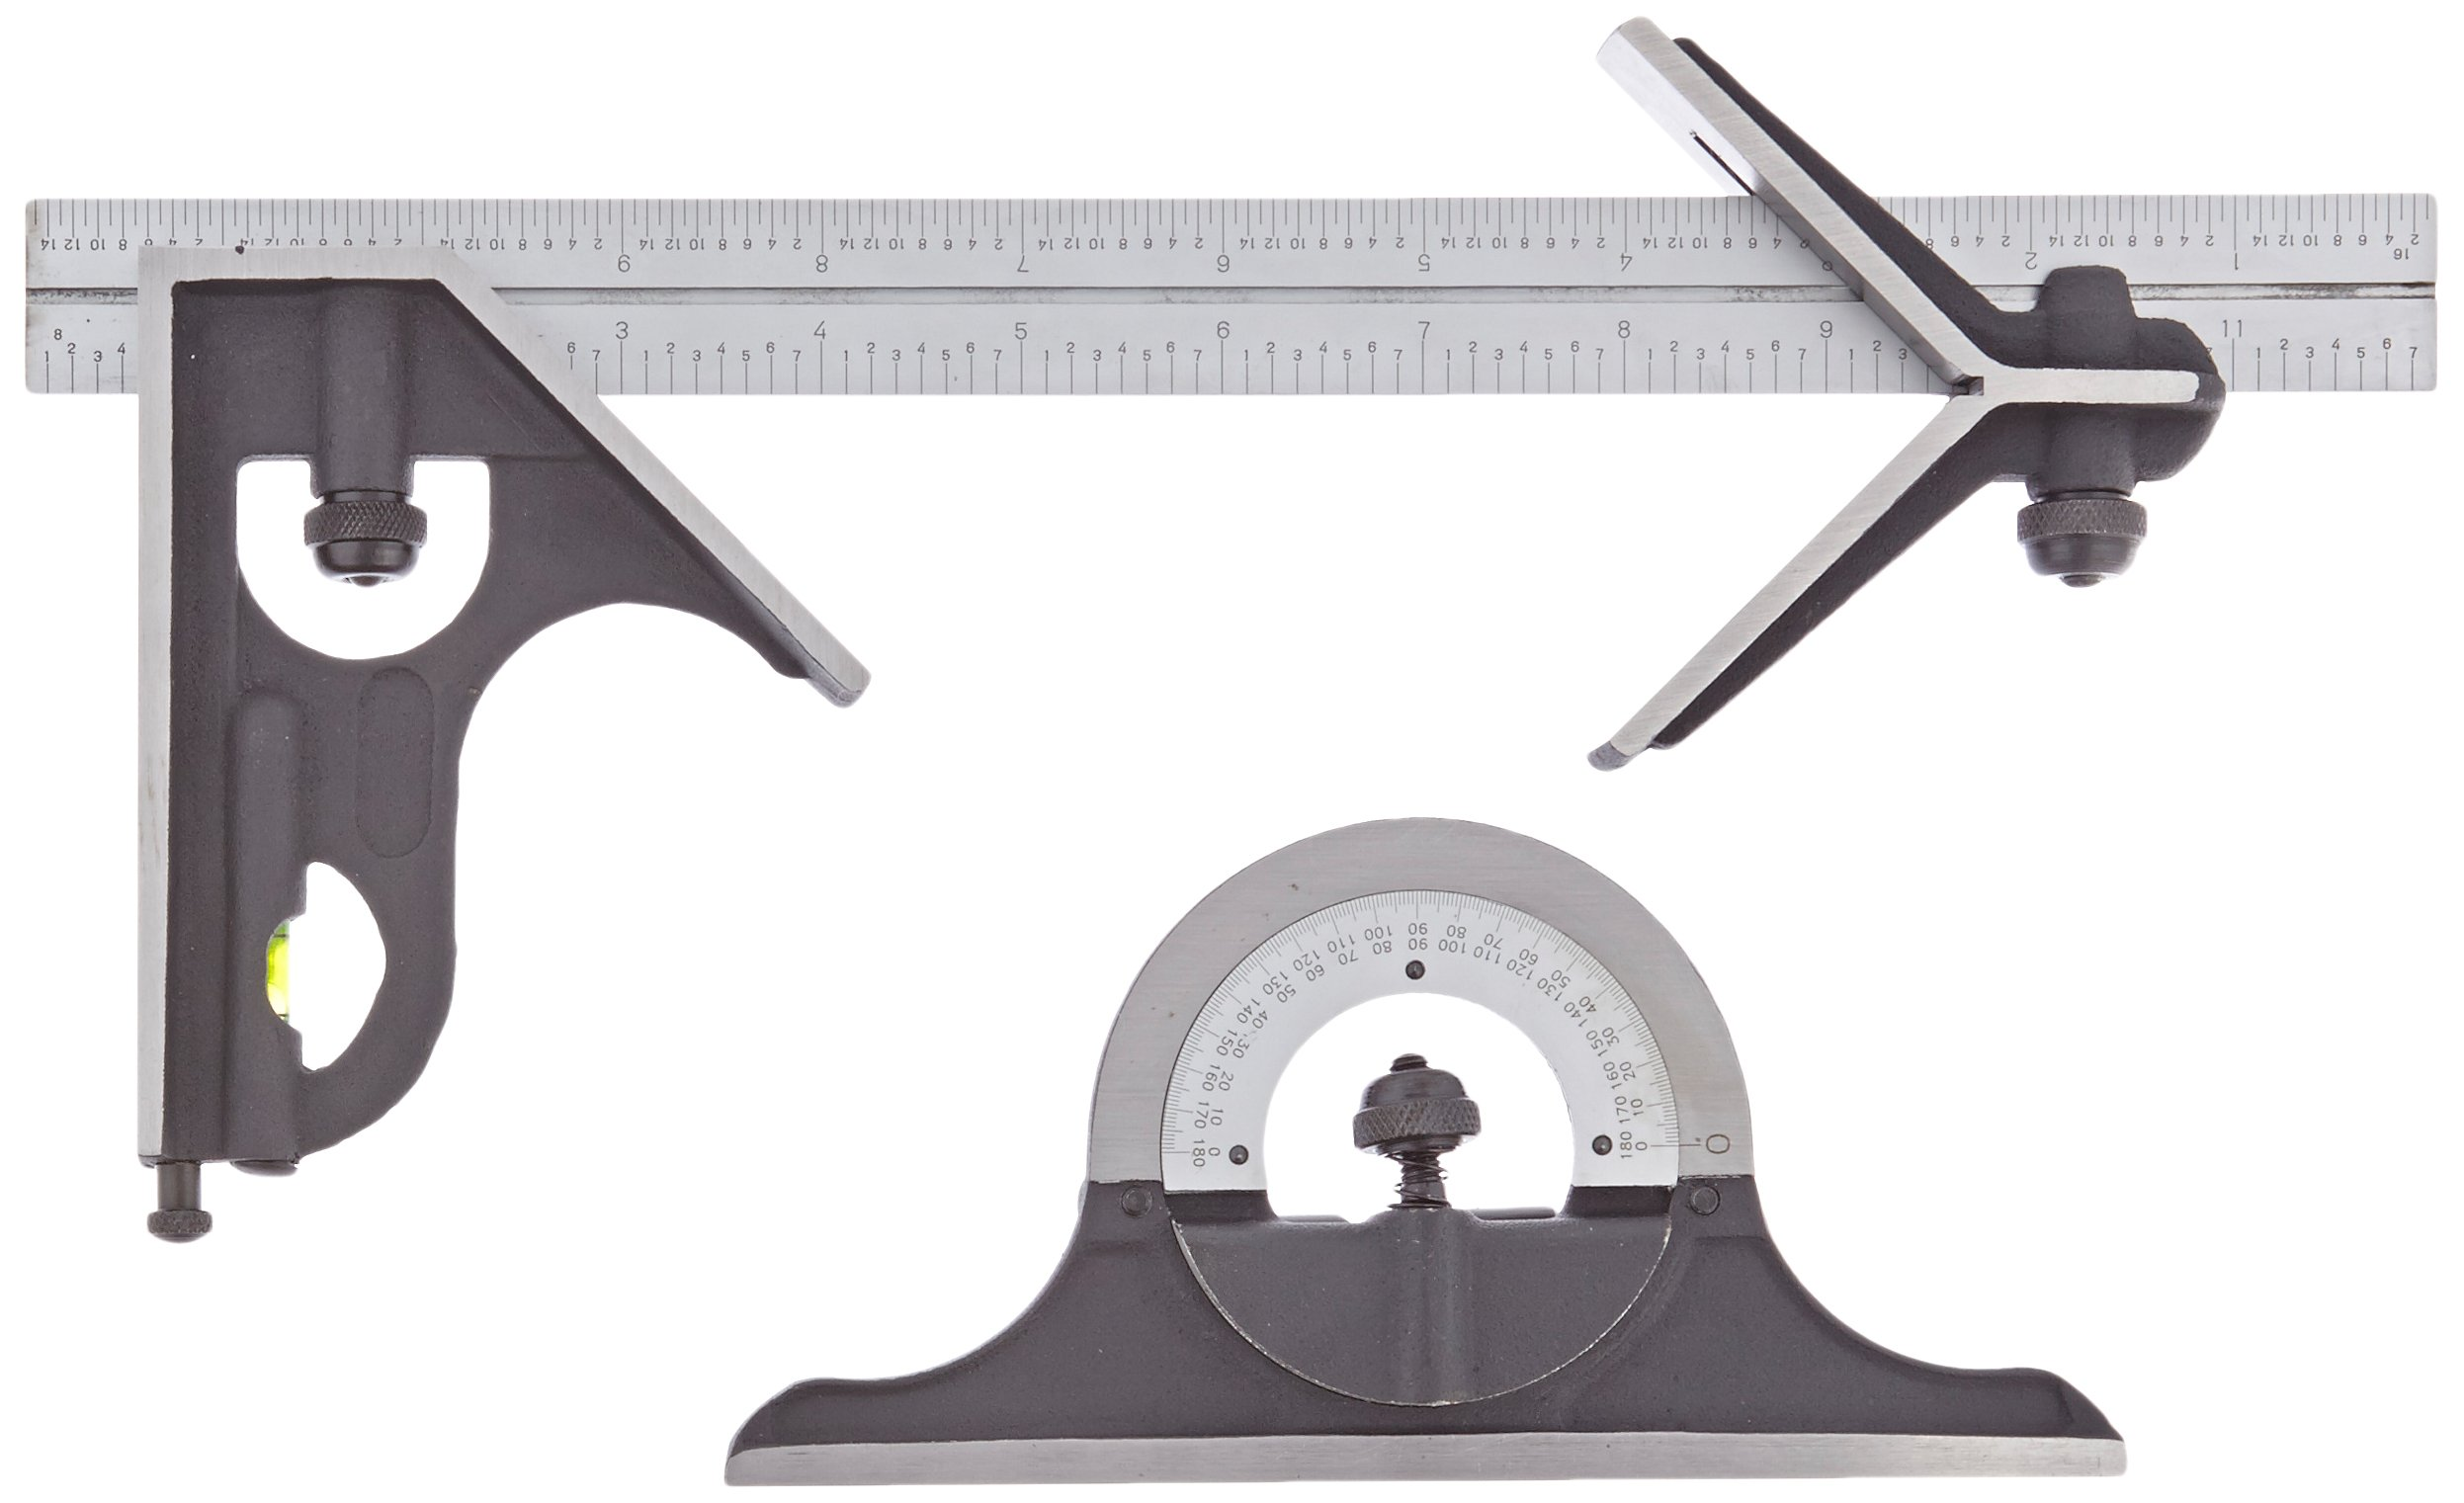 Fowler 52-370-012 Steel Combination Square Set with Baked Blue Enamel Finish, 4R Graduation Interval, 4 Blade, 12'' Length